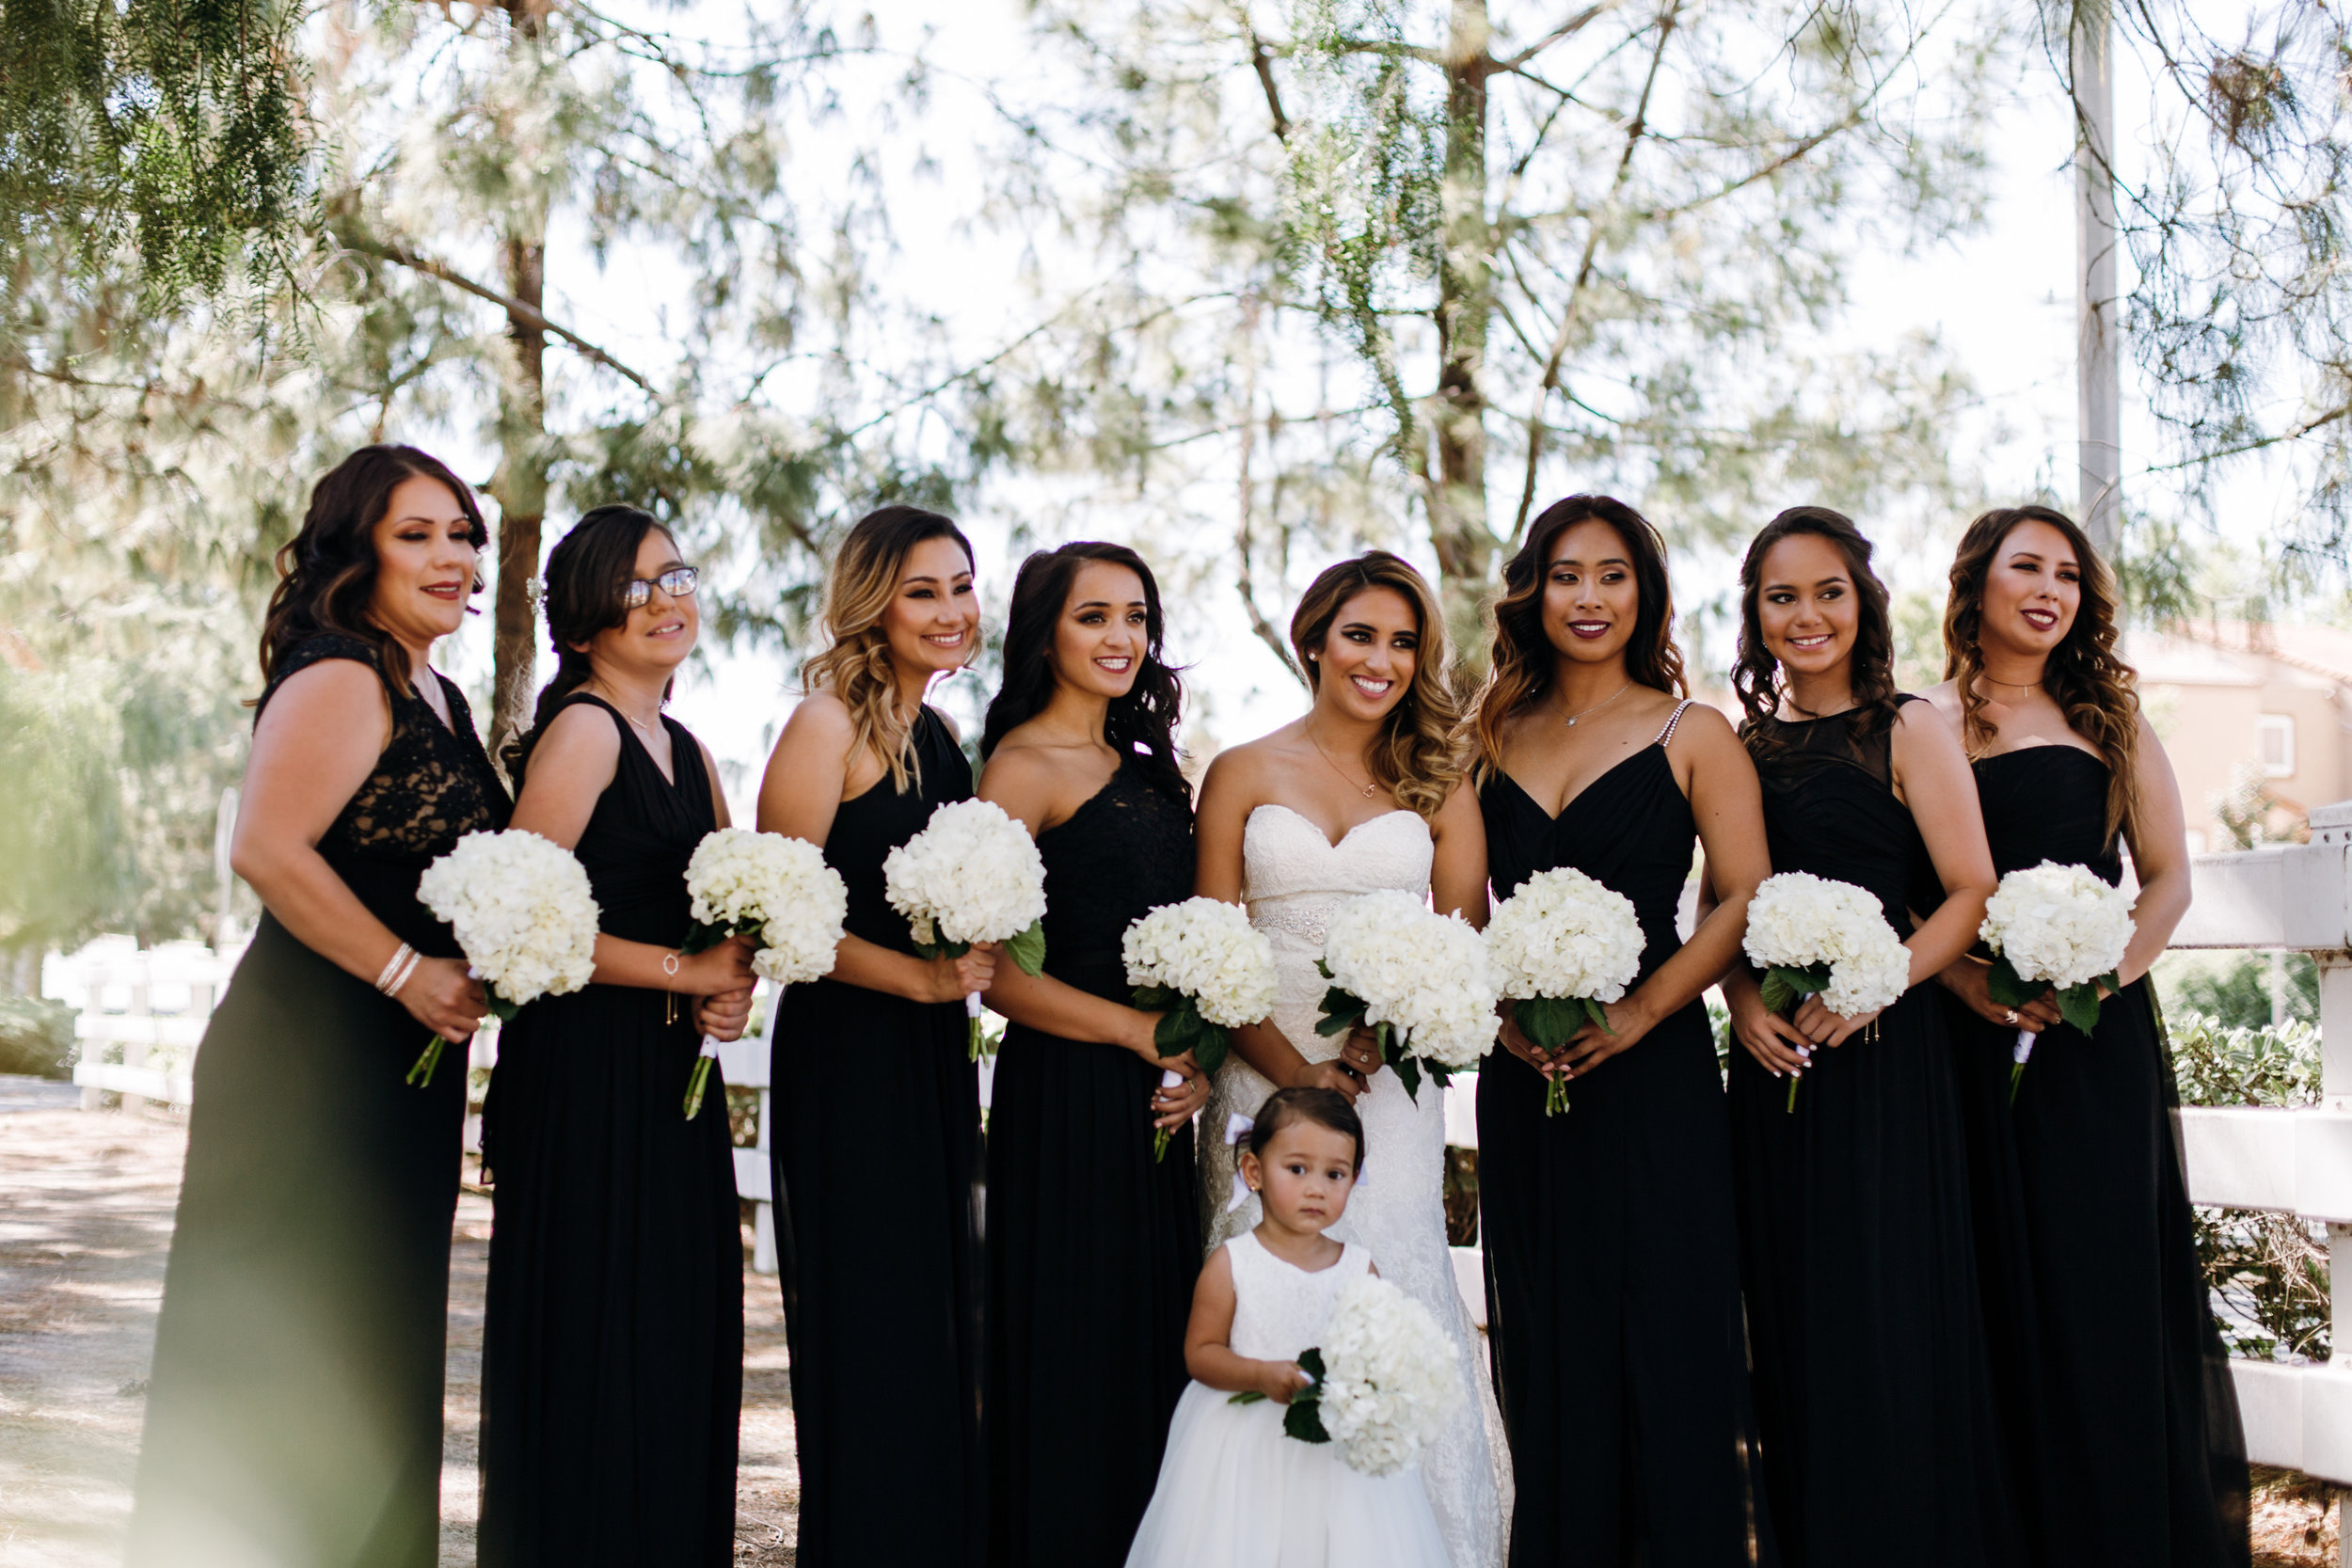 KaraNixonWeddings-CoyoteHillsGolf-Fullerton-Wedding-23.jpg